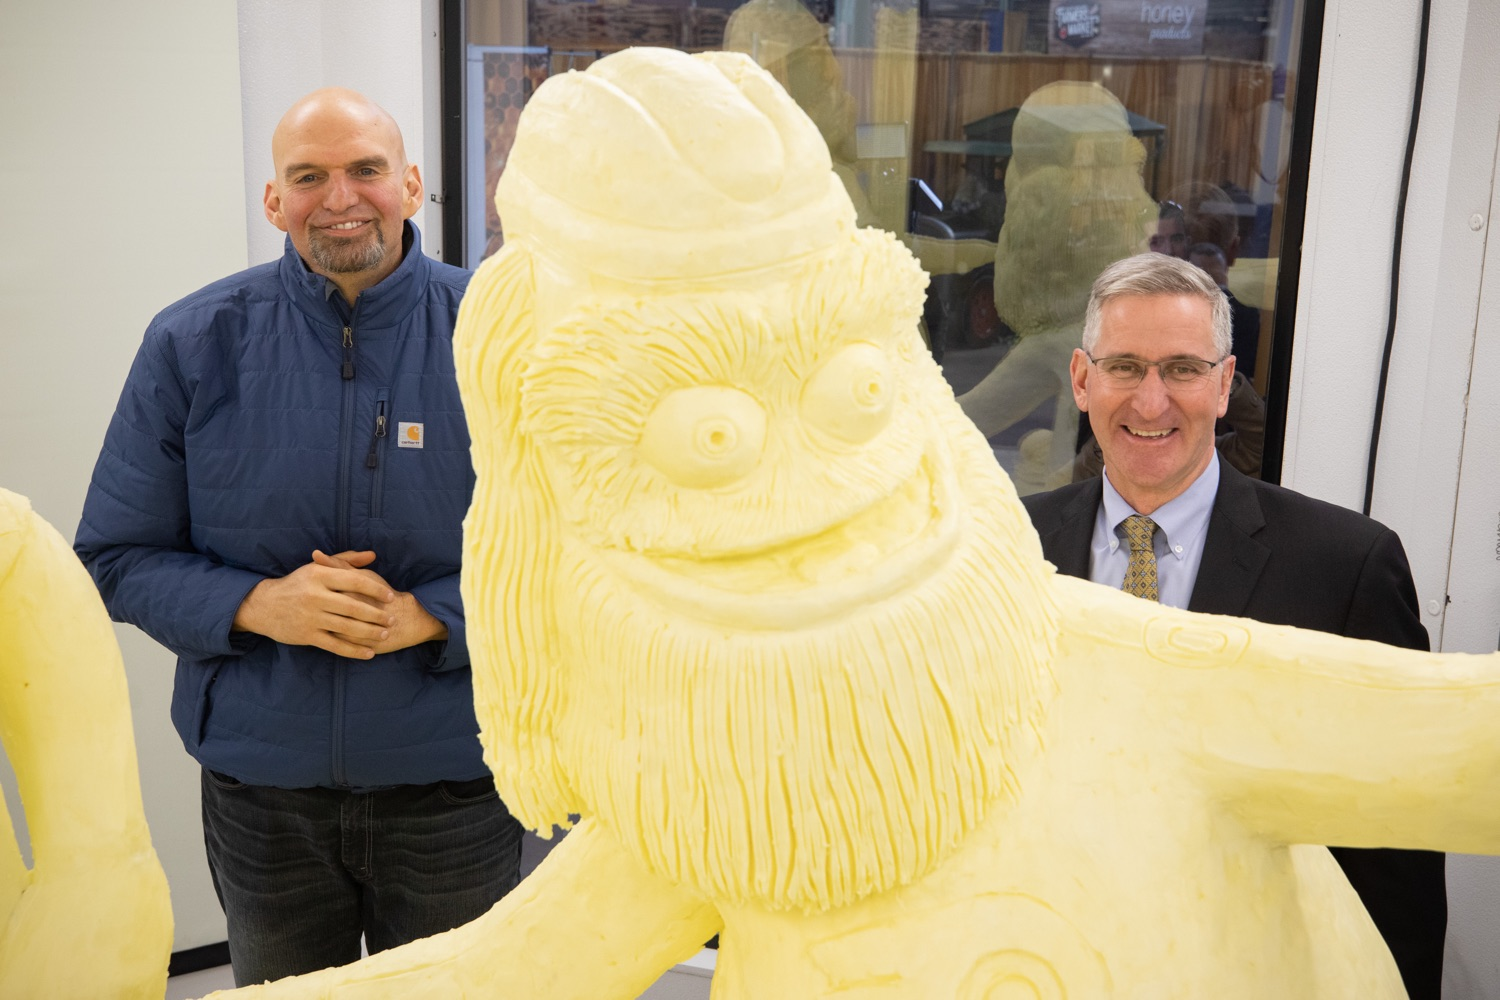 "<a href=""https://filesource.wostreaming.net/commonwealthofpa/photo/17646_agric_butter_sculpture_dz_023.jpg"" target=""_blank"">⇣ Download Photo<br></a>Lt. Governor John Fetterman,  and Secretary of Agriculture Russell Redding at the Pennsylvania Farm Show butter sculpture.  Lt. Governor John Fetterman and Secretary of Agriculture Russell Redding today unveiled the 2020 Pennsylvania Farm Show butter sculpture, carved from a half-ton of butter depicting three of Pennsylvanias beloved professional sports mascots: Philadelphia Flyers Gritty, Philadelphia Eagles Swoop, and Pittsburgh Steelers Steely McBeam celebrating with a spread of Pennsylvania dairy products. The sculpture, a long-time Farm Show staple, encourages Pennsylvanians to be a fan of Pennsylvania dairy and give a cheer to the more than 6,200 dairy farmers in the commonwealth.  Harrisburg, PA  January 2, 2020"